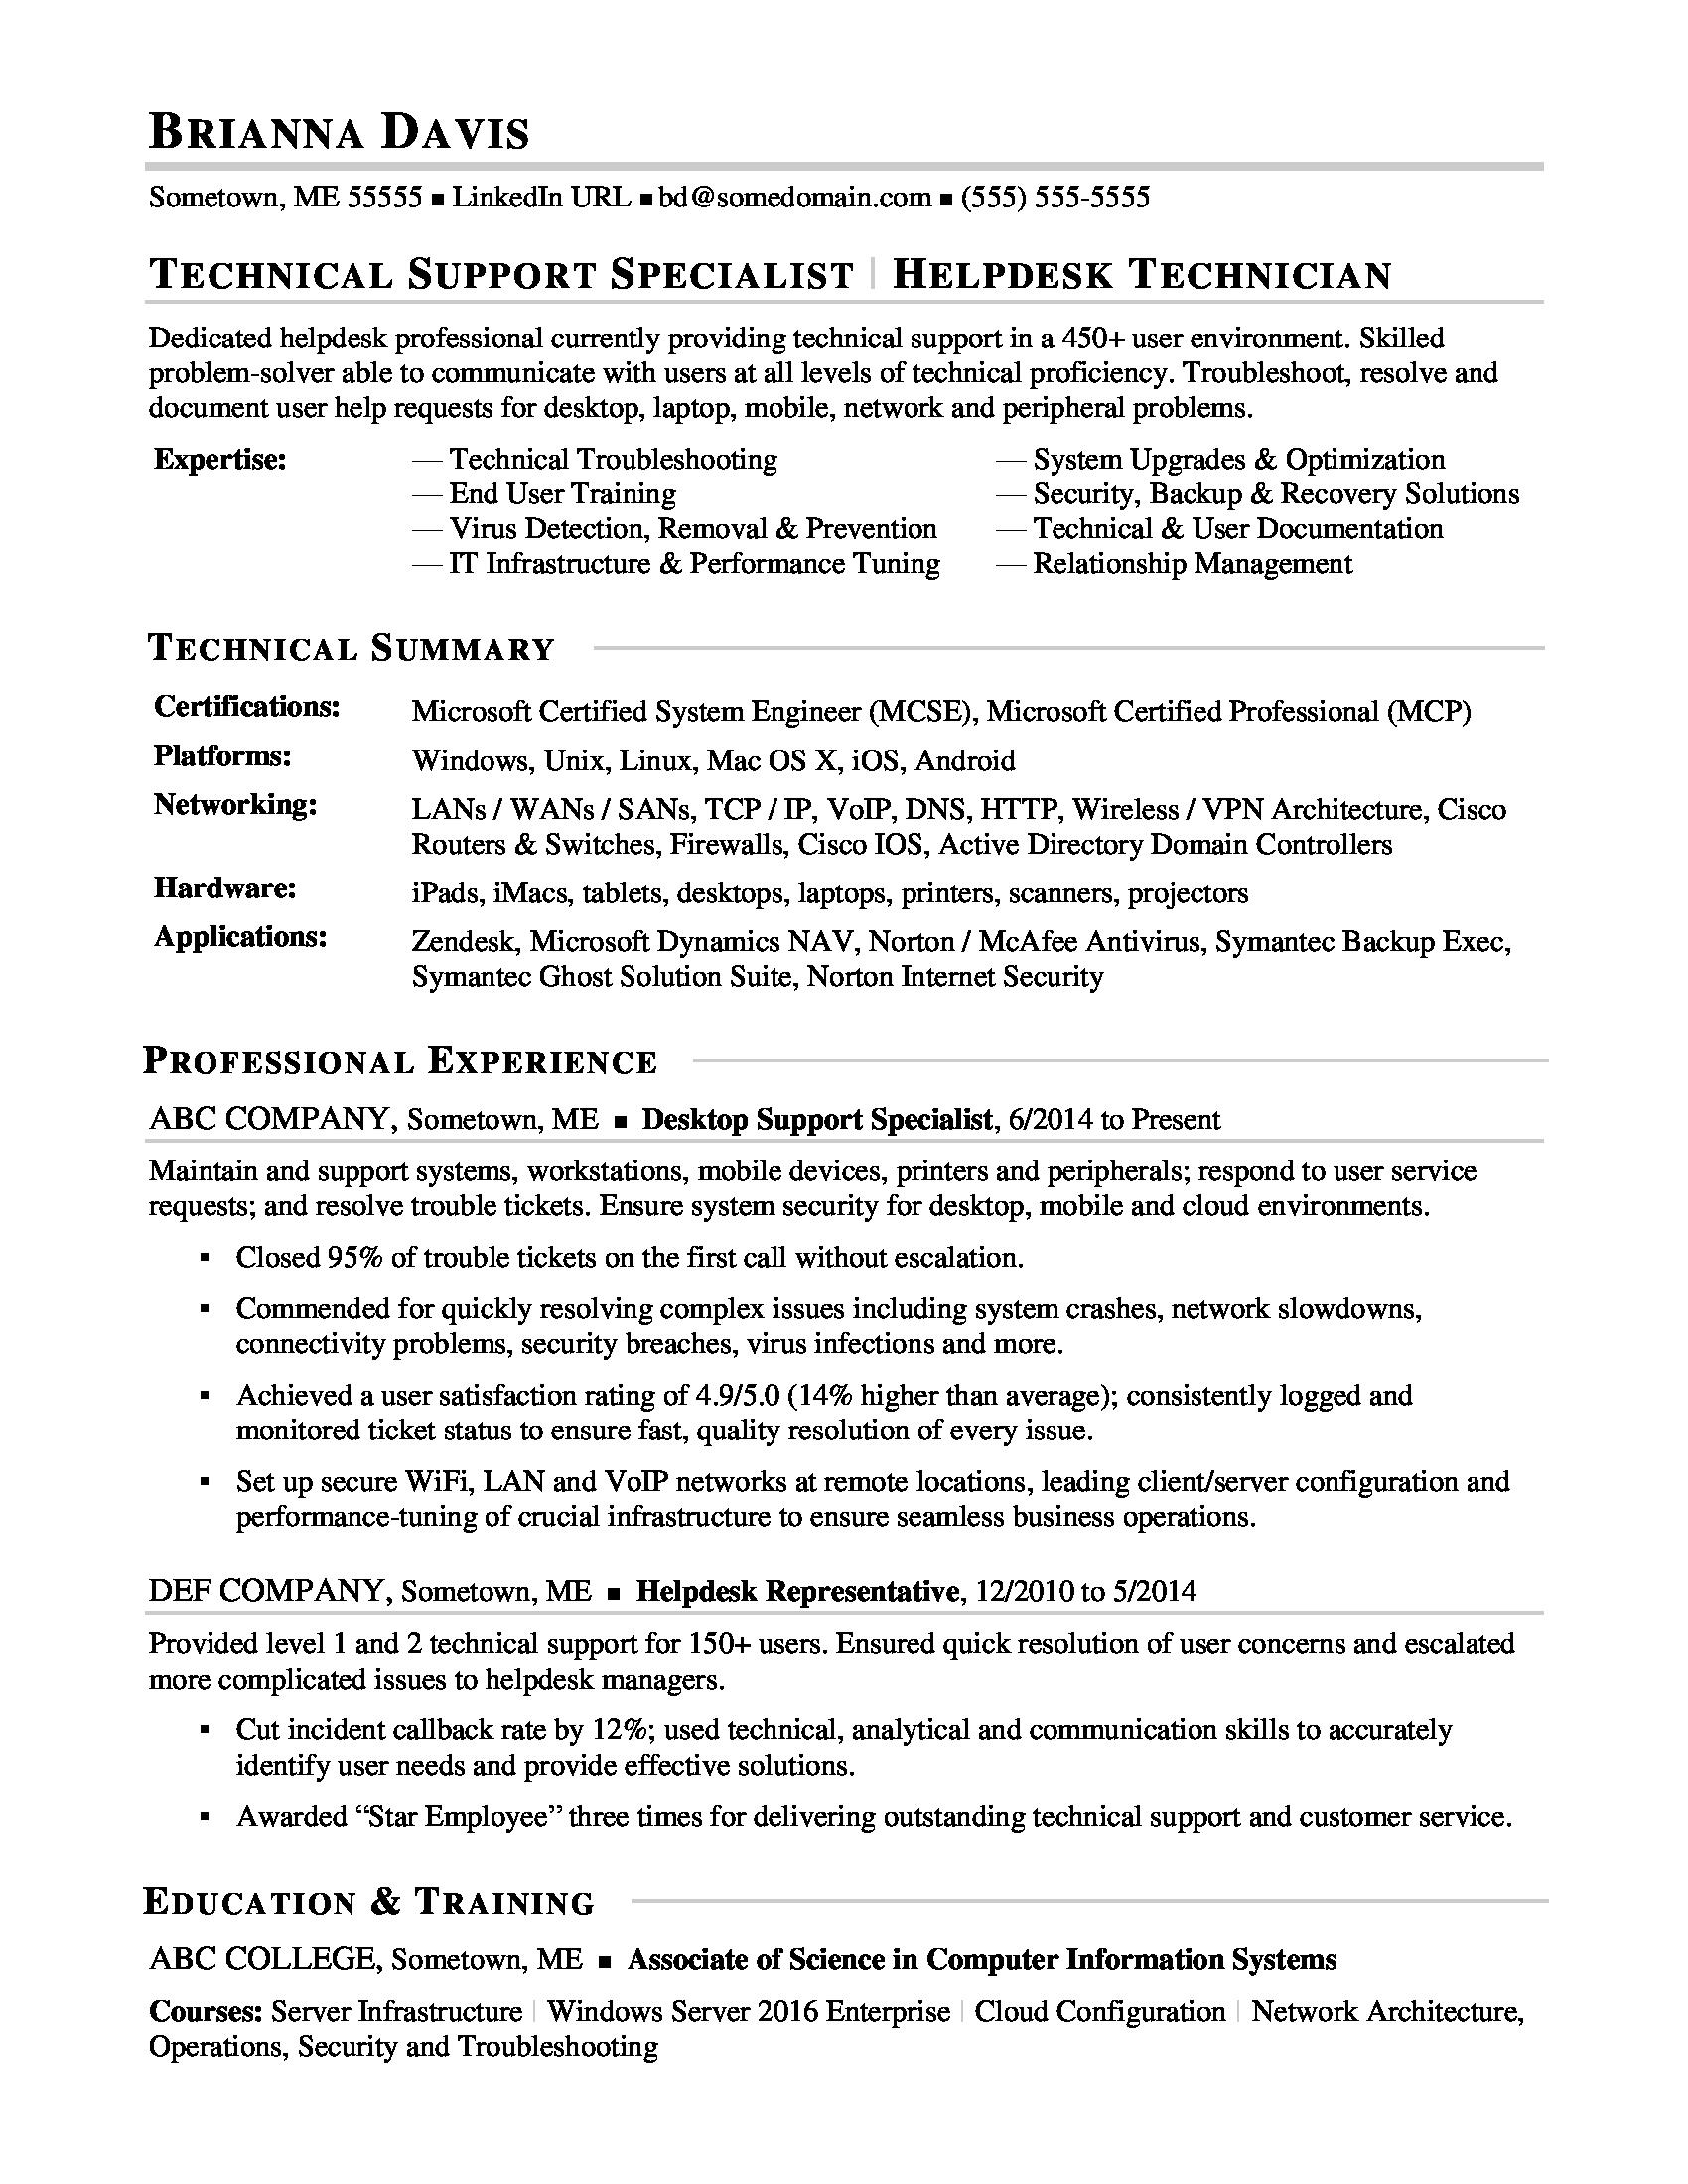 Information Manager Technology Job Description Security